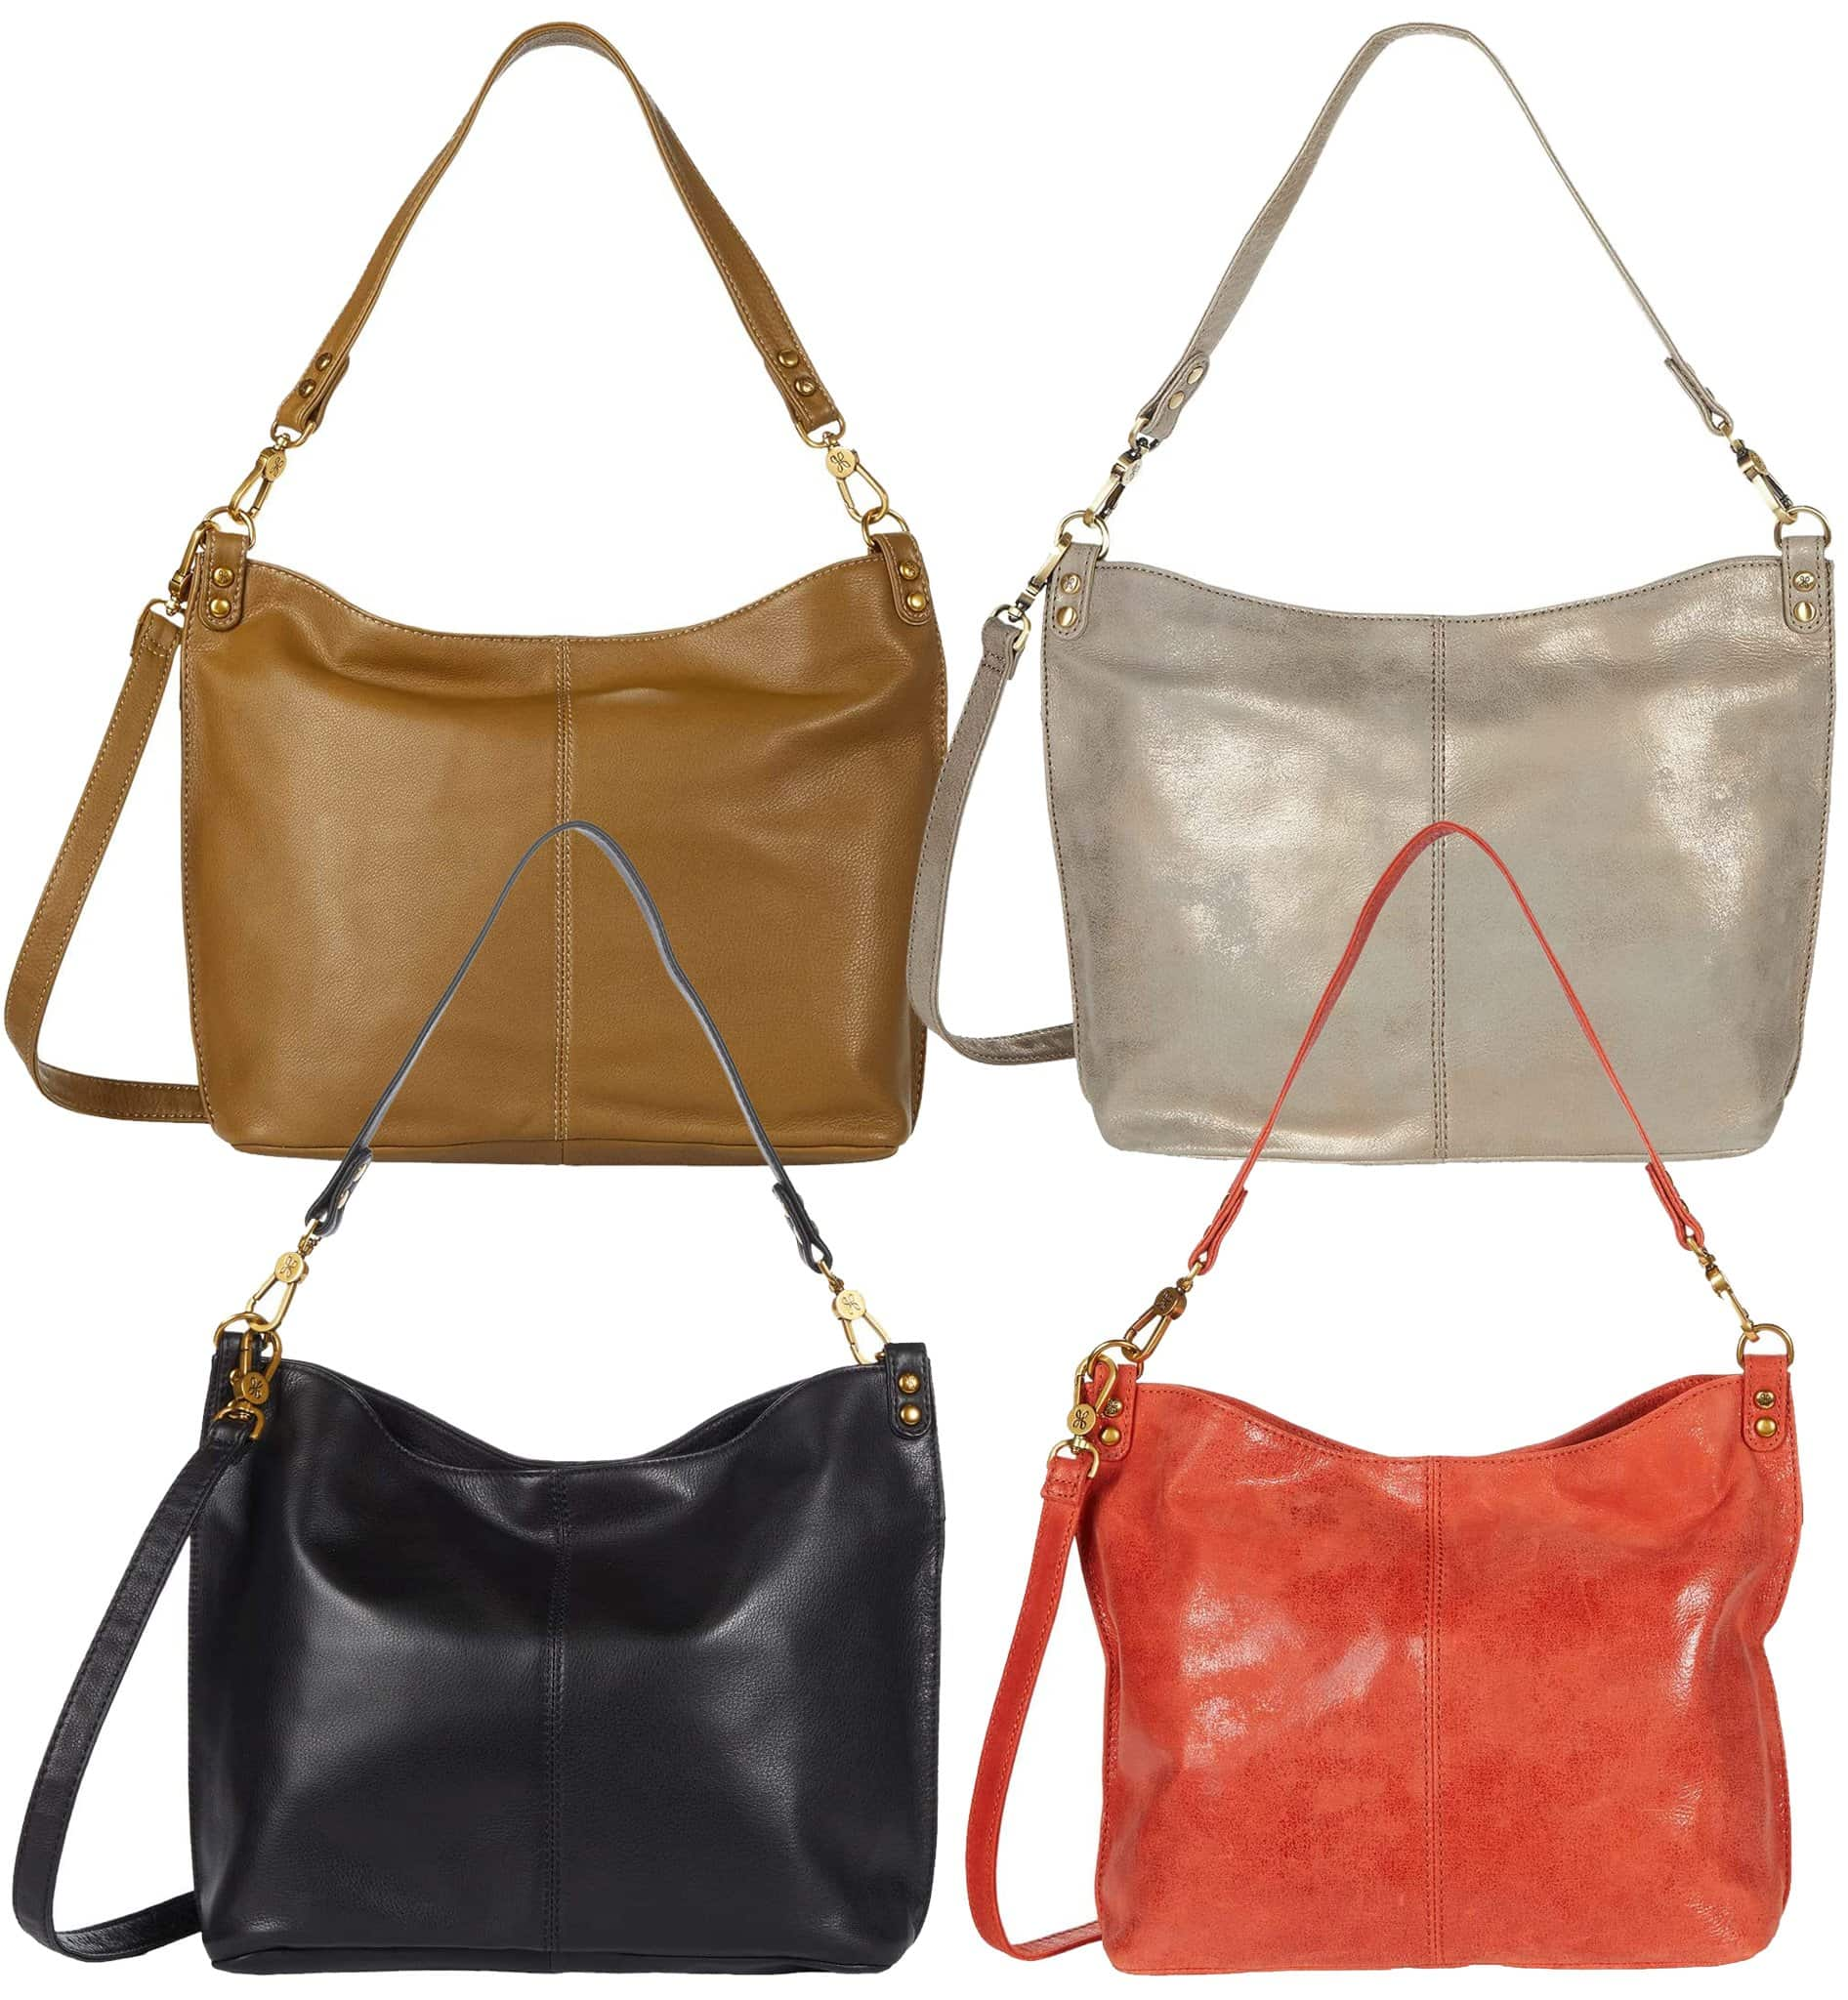 The Hobo Pier is a versatile bag that converts from a shoulder bag to a crossbody bag, thanks to the carrying handle and detachable, adjustable crossbody strap